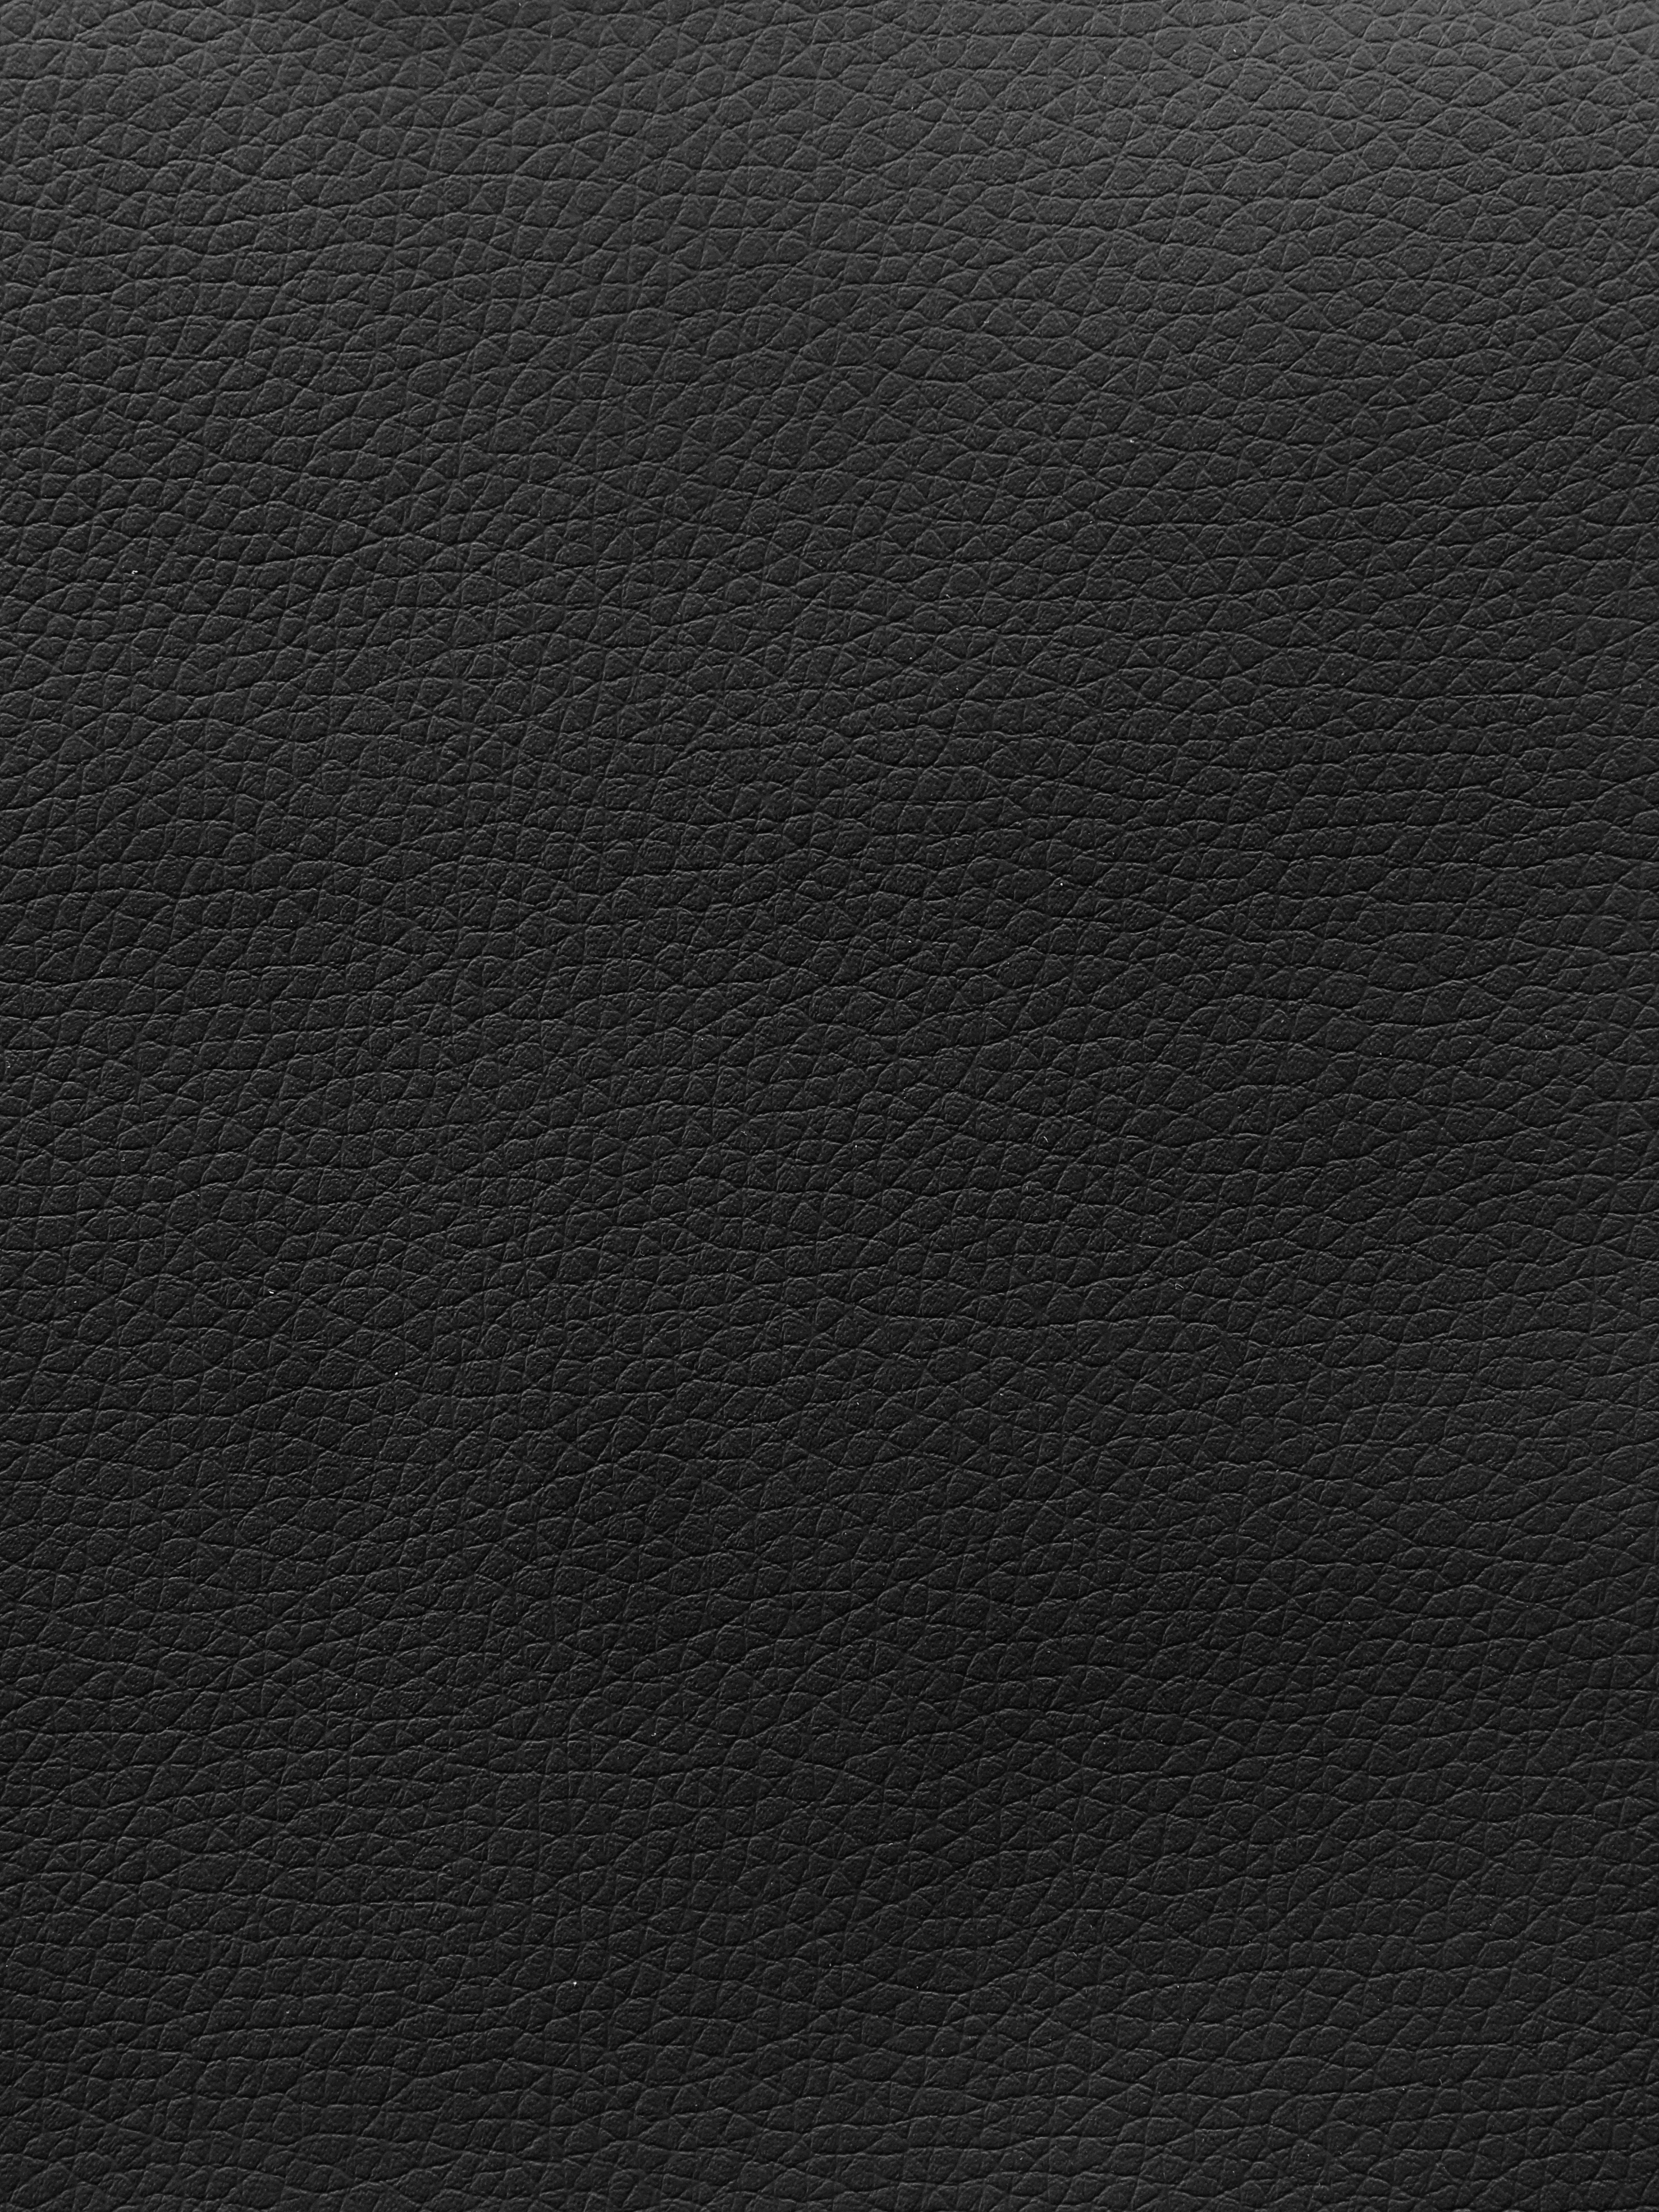 Black Leather Texture Dark Embossed